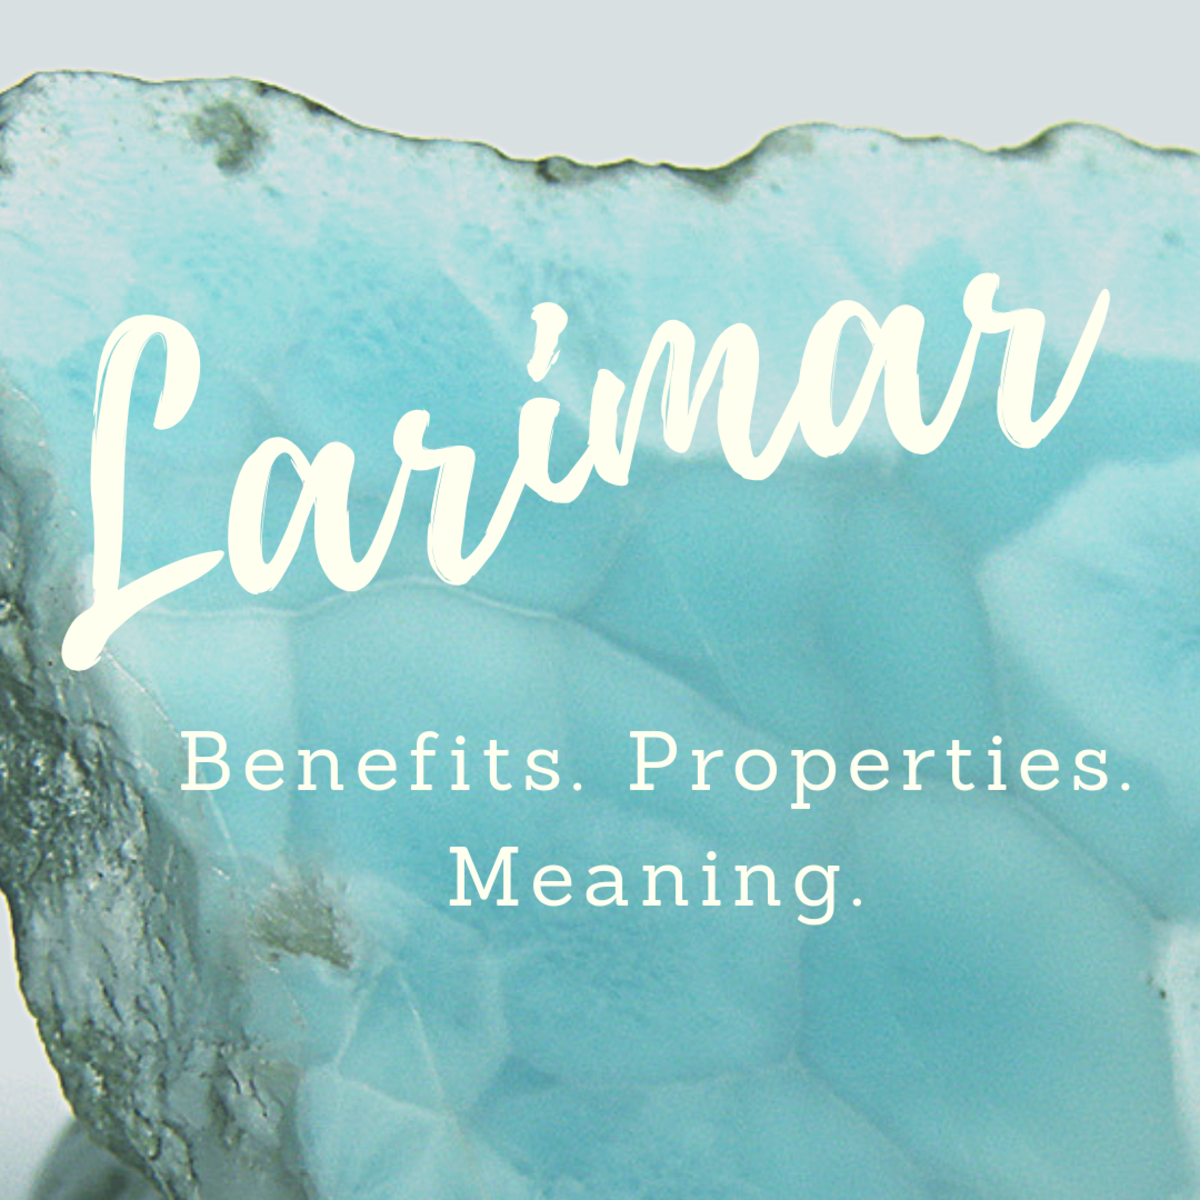 Larimar is an excellent stone for crystal healing.